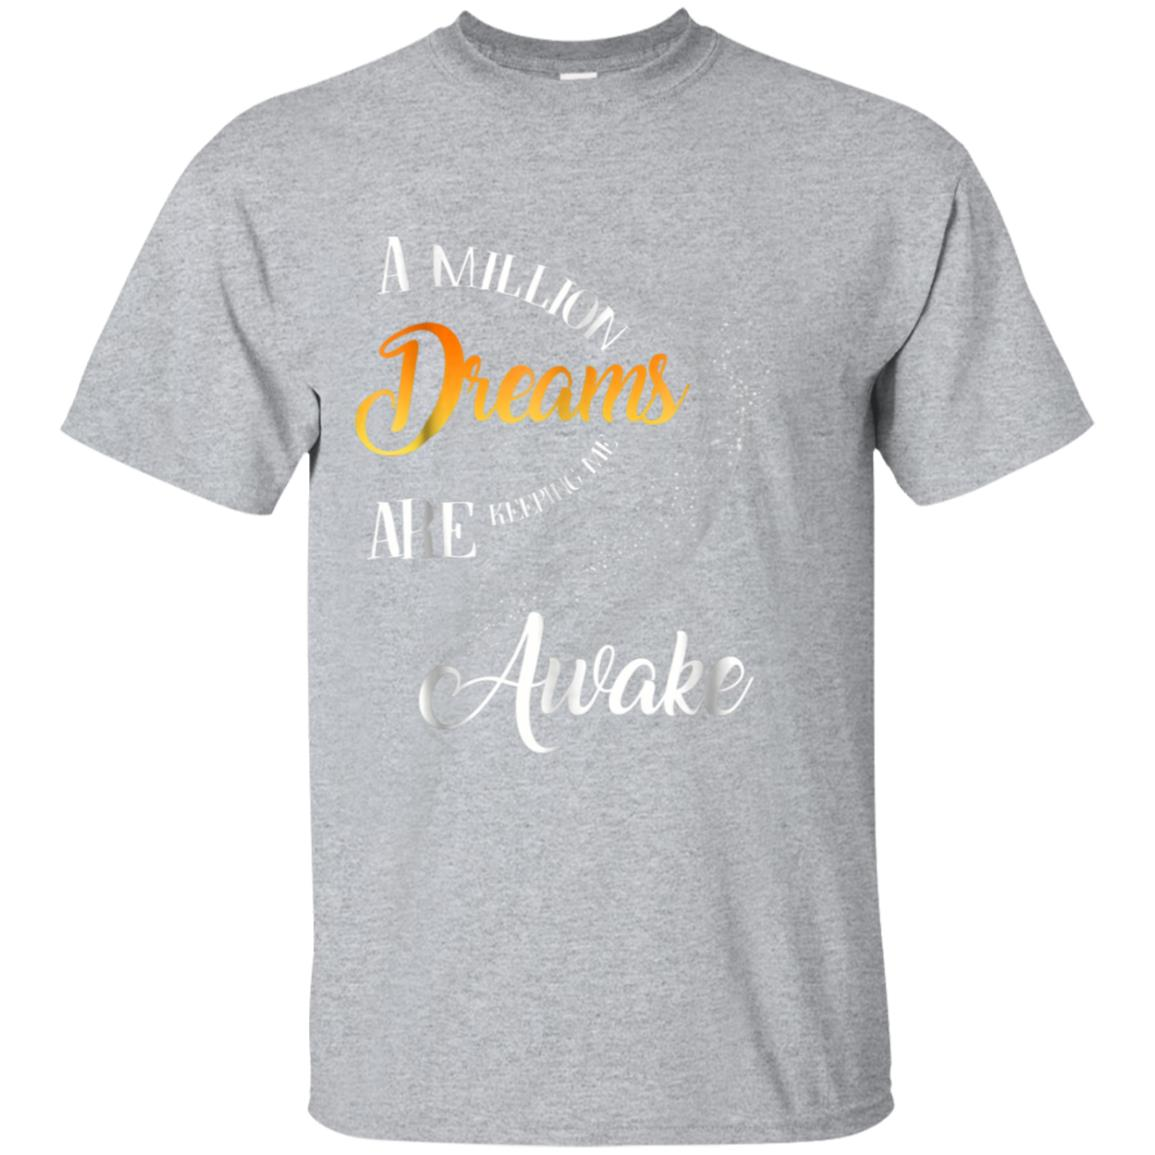 A Million Dreams Are Keeping Me Awake T Shirt 99promocode